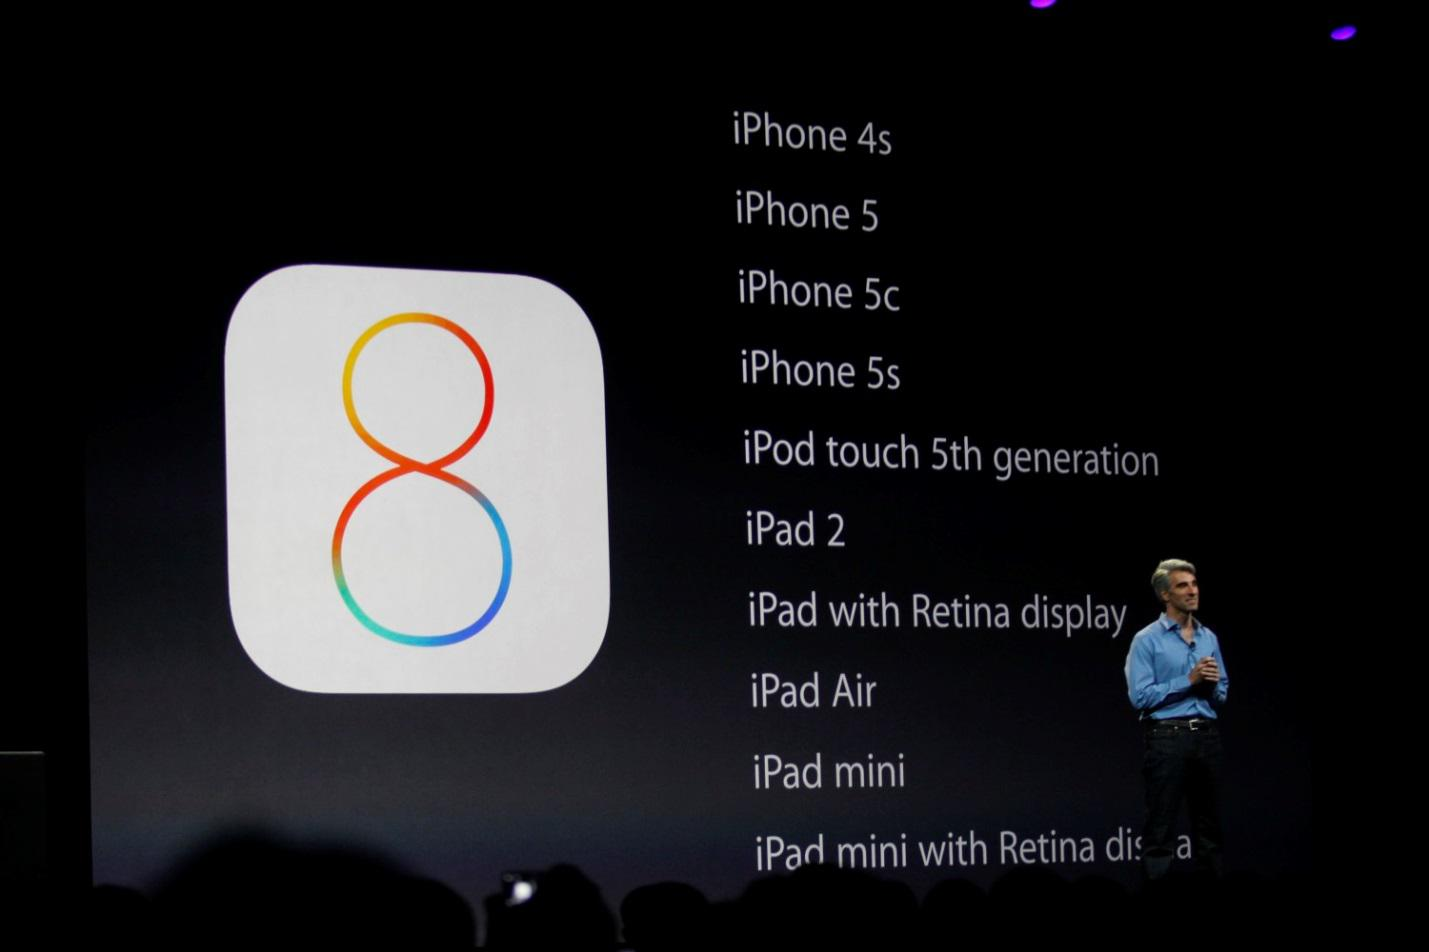 Coolest iOS 8 Features